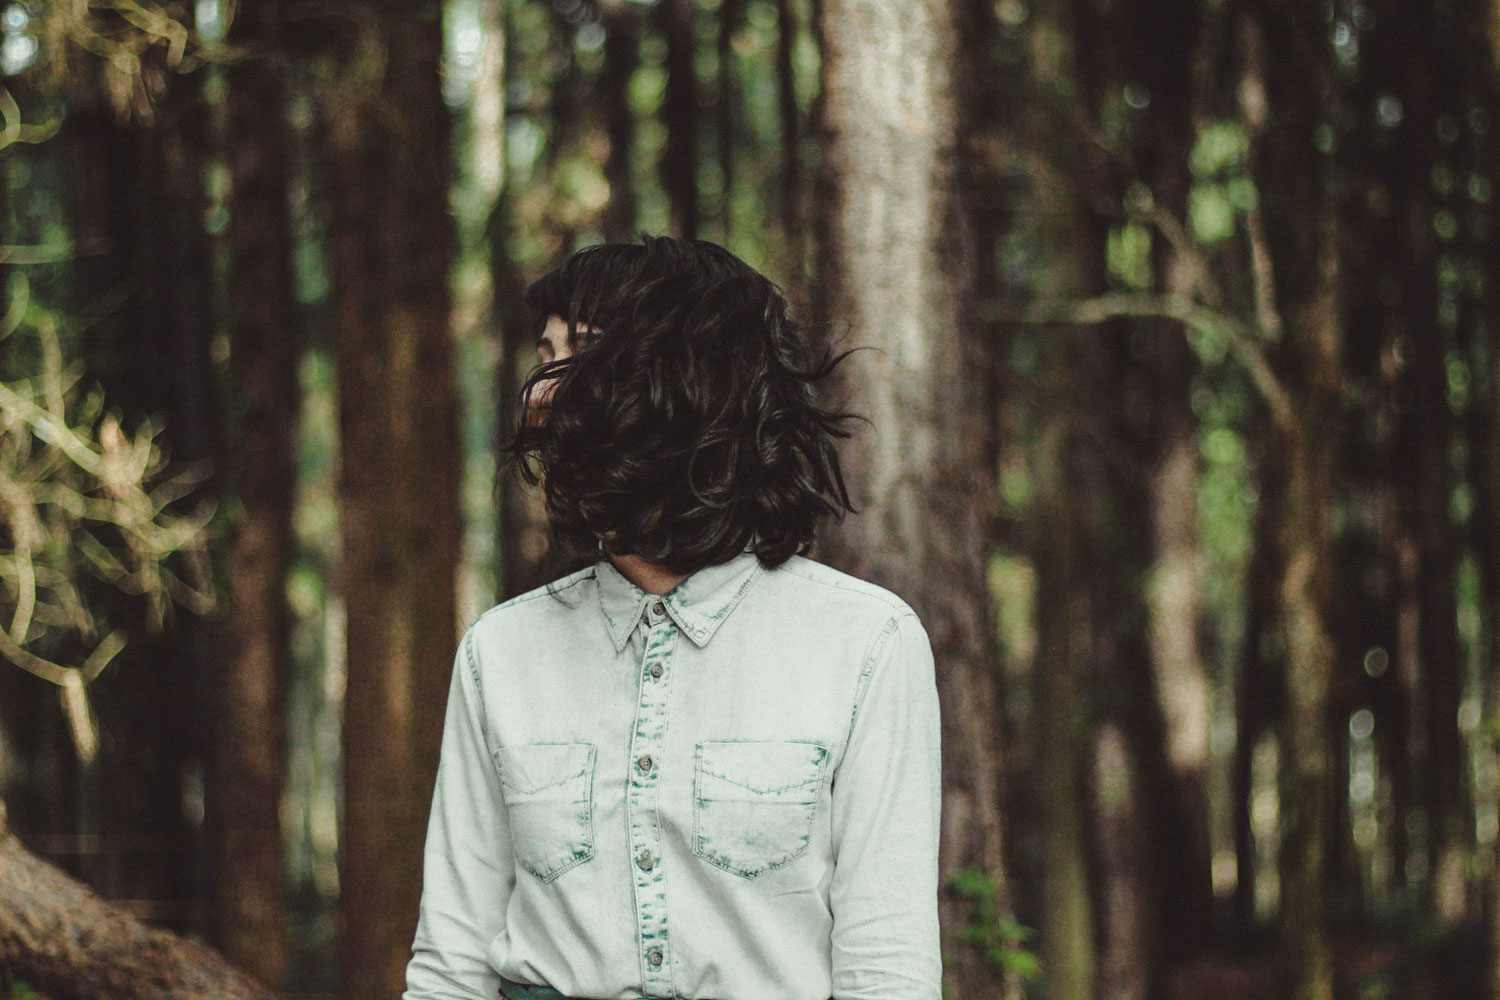 a lady in a white buttoned up shirt looking into the forest